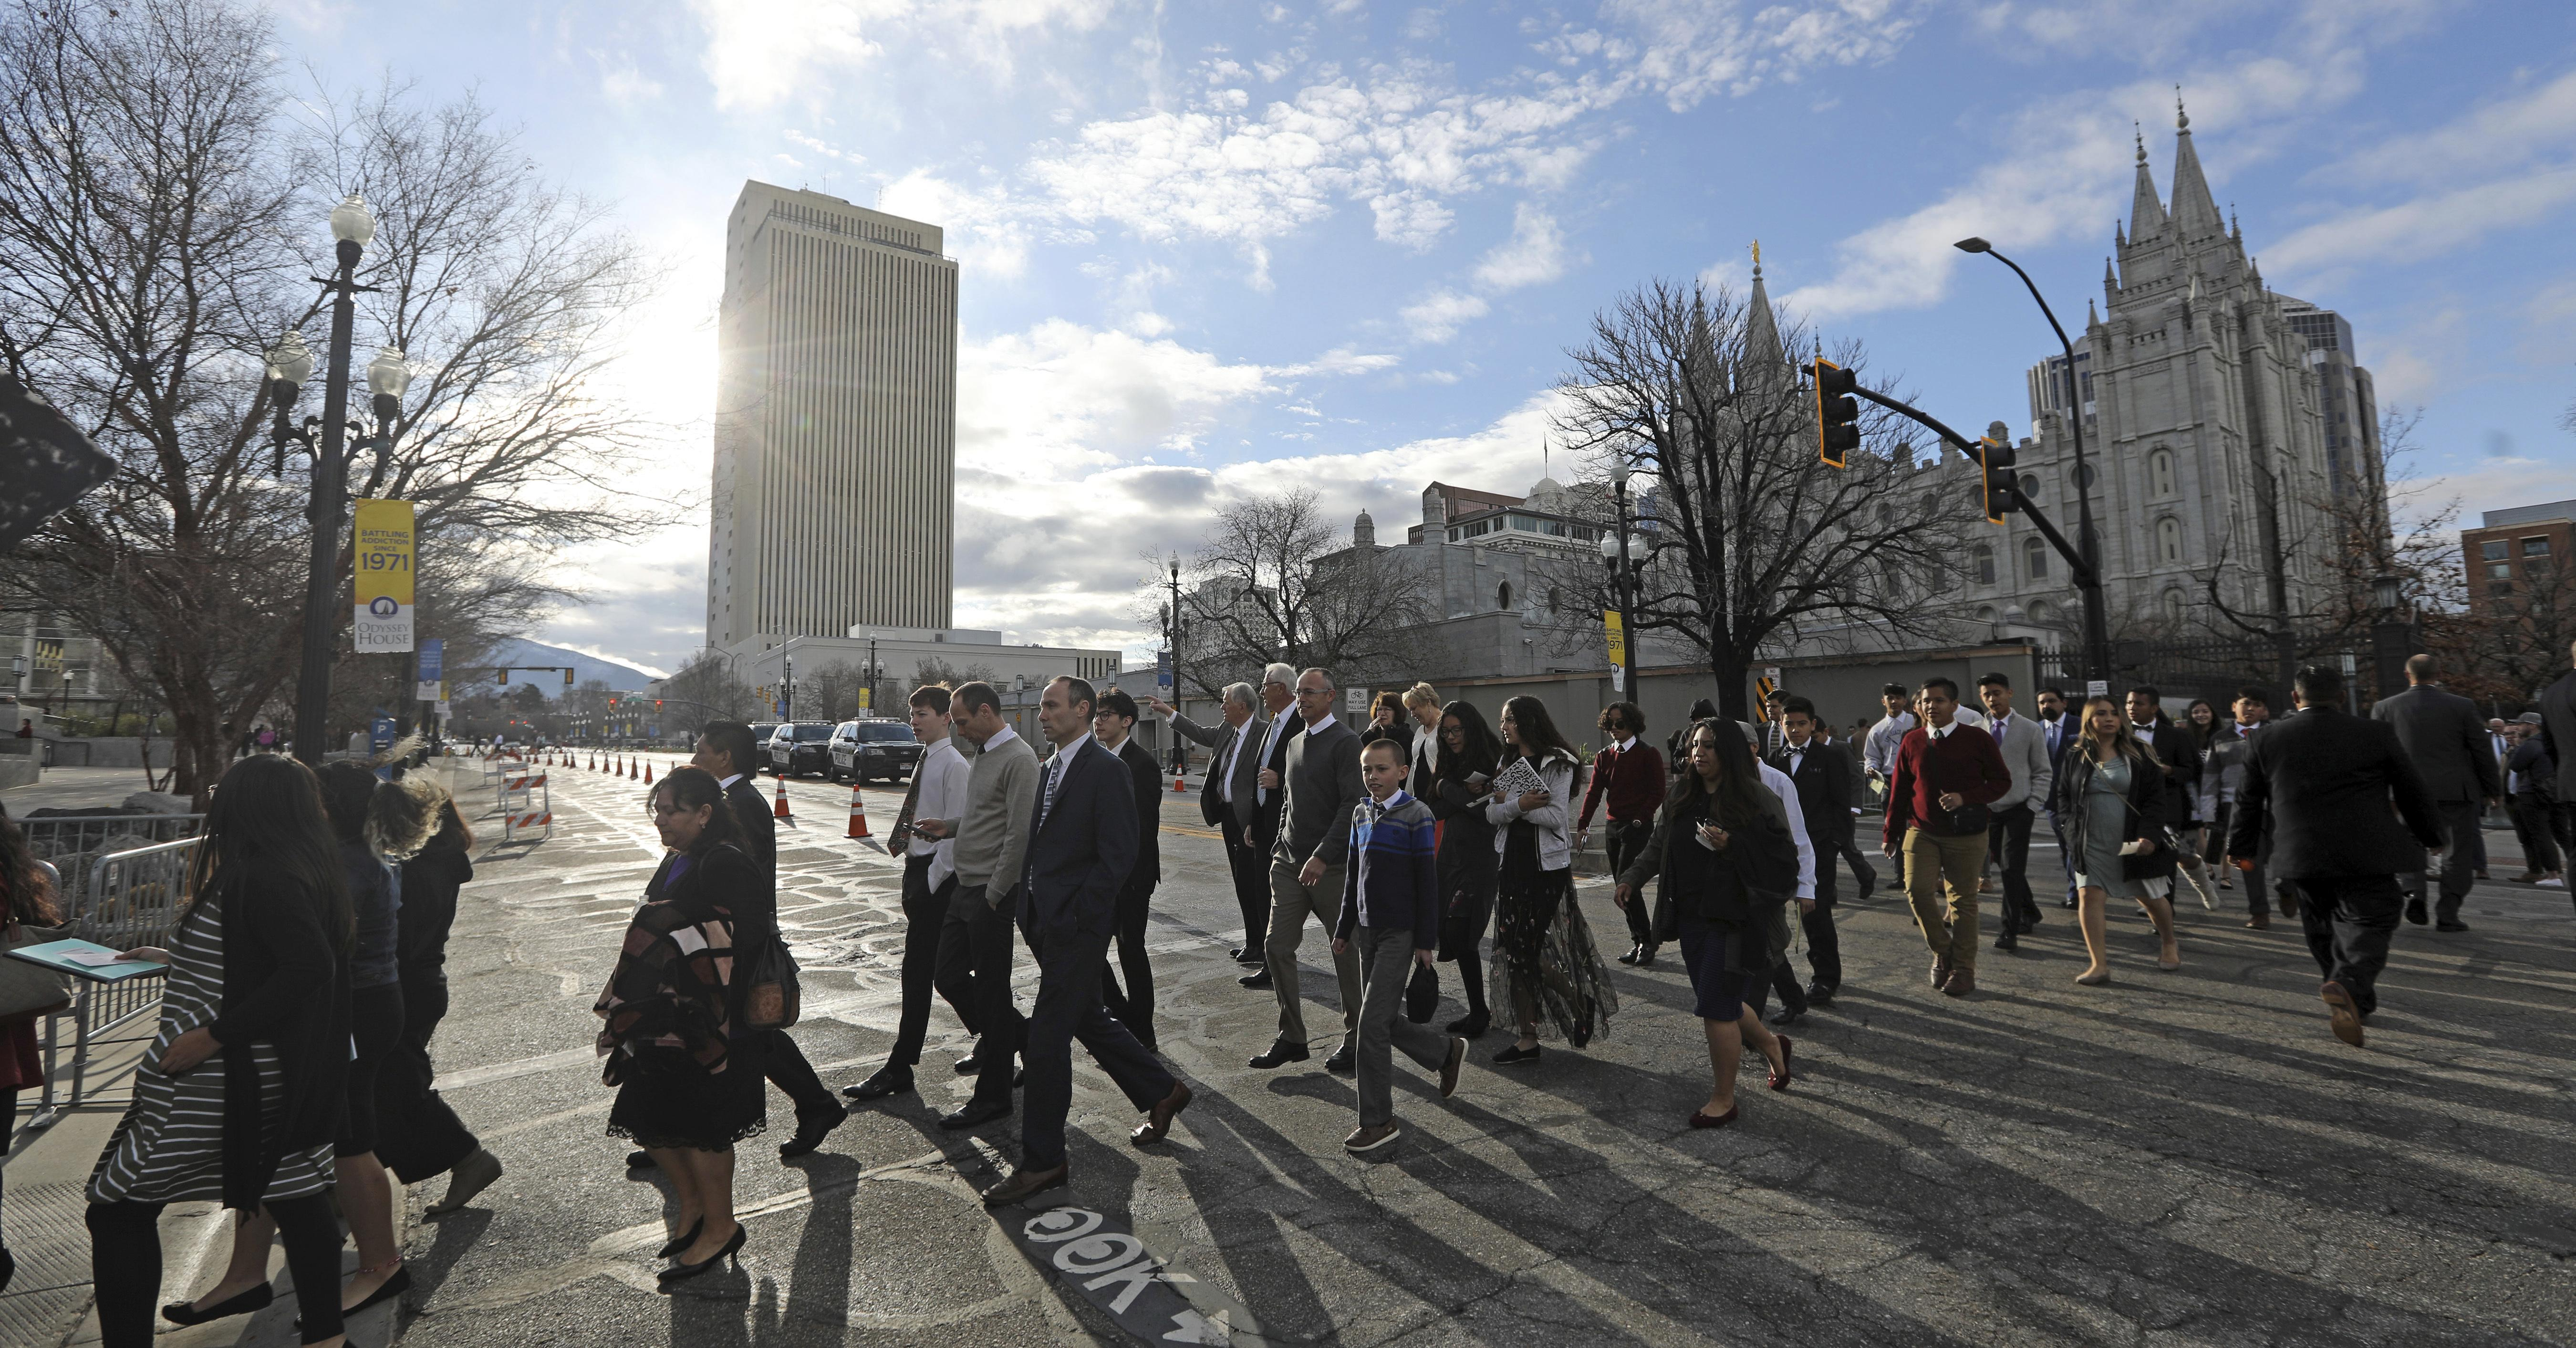 Mormons leader warns of 'rampant immorality' at conference | The